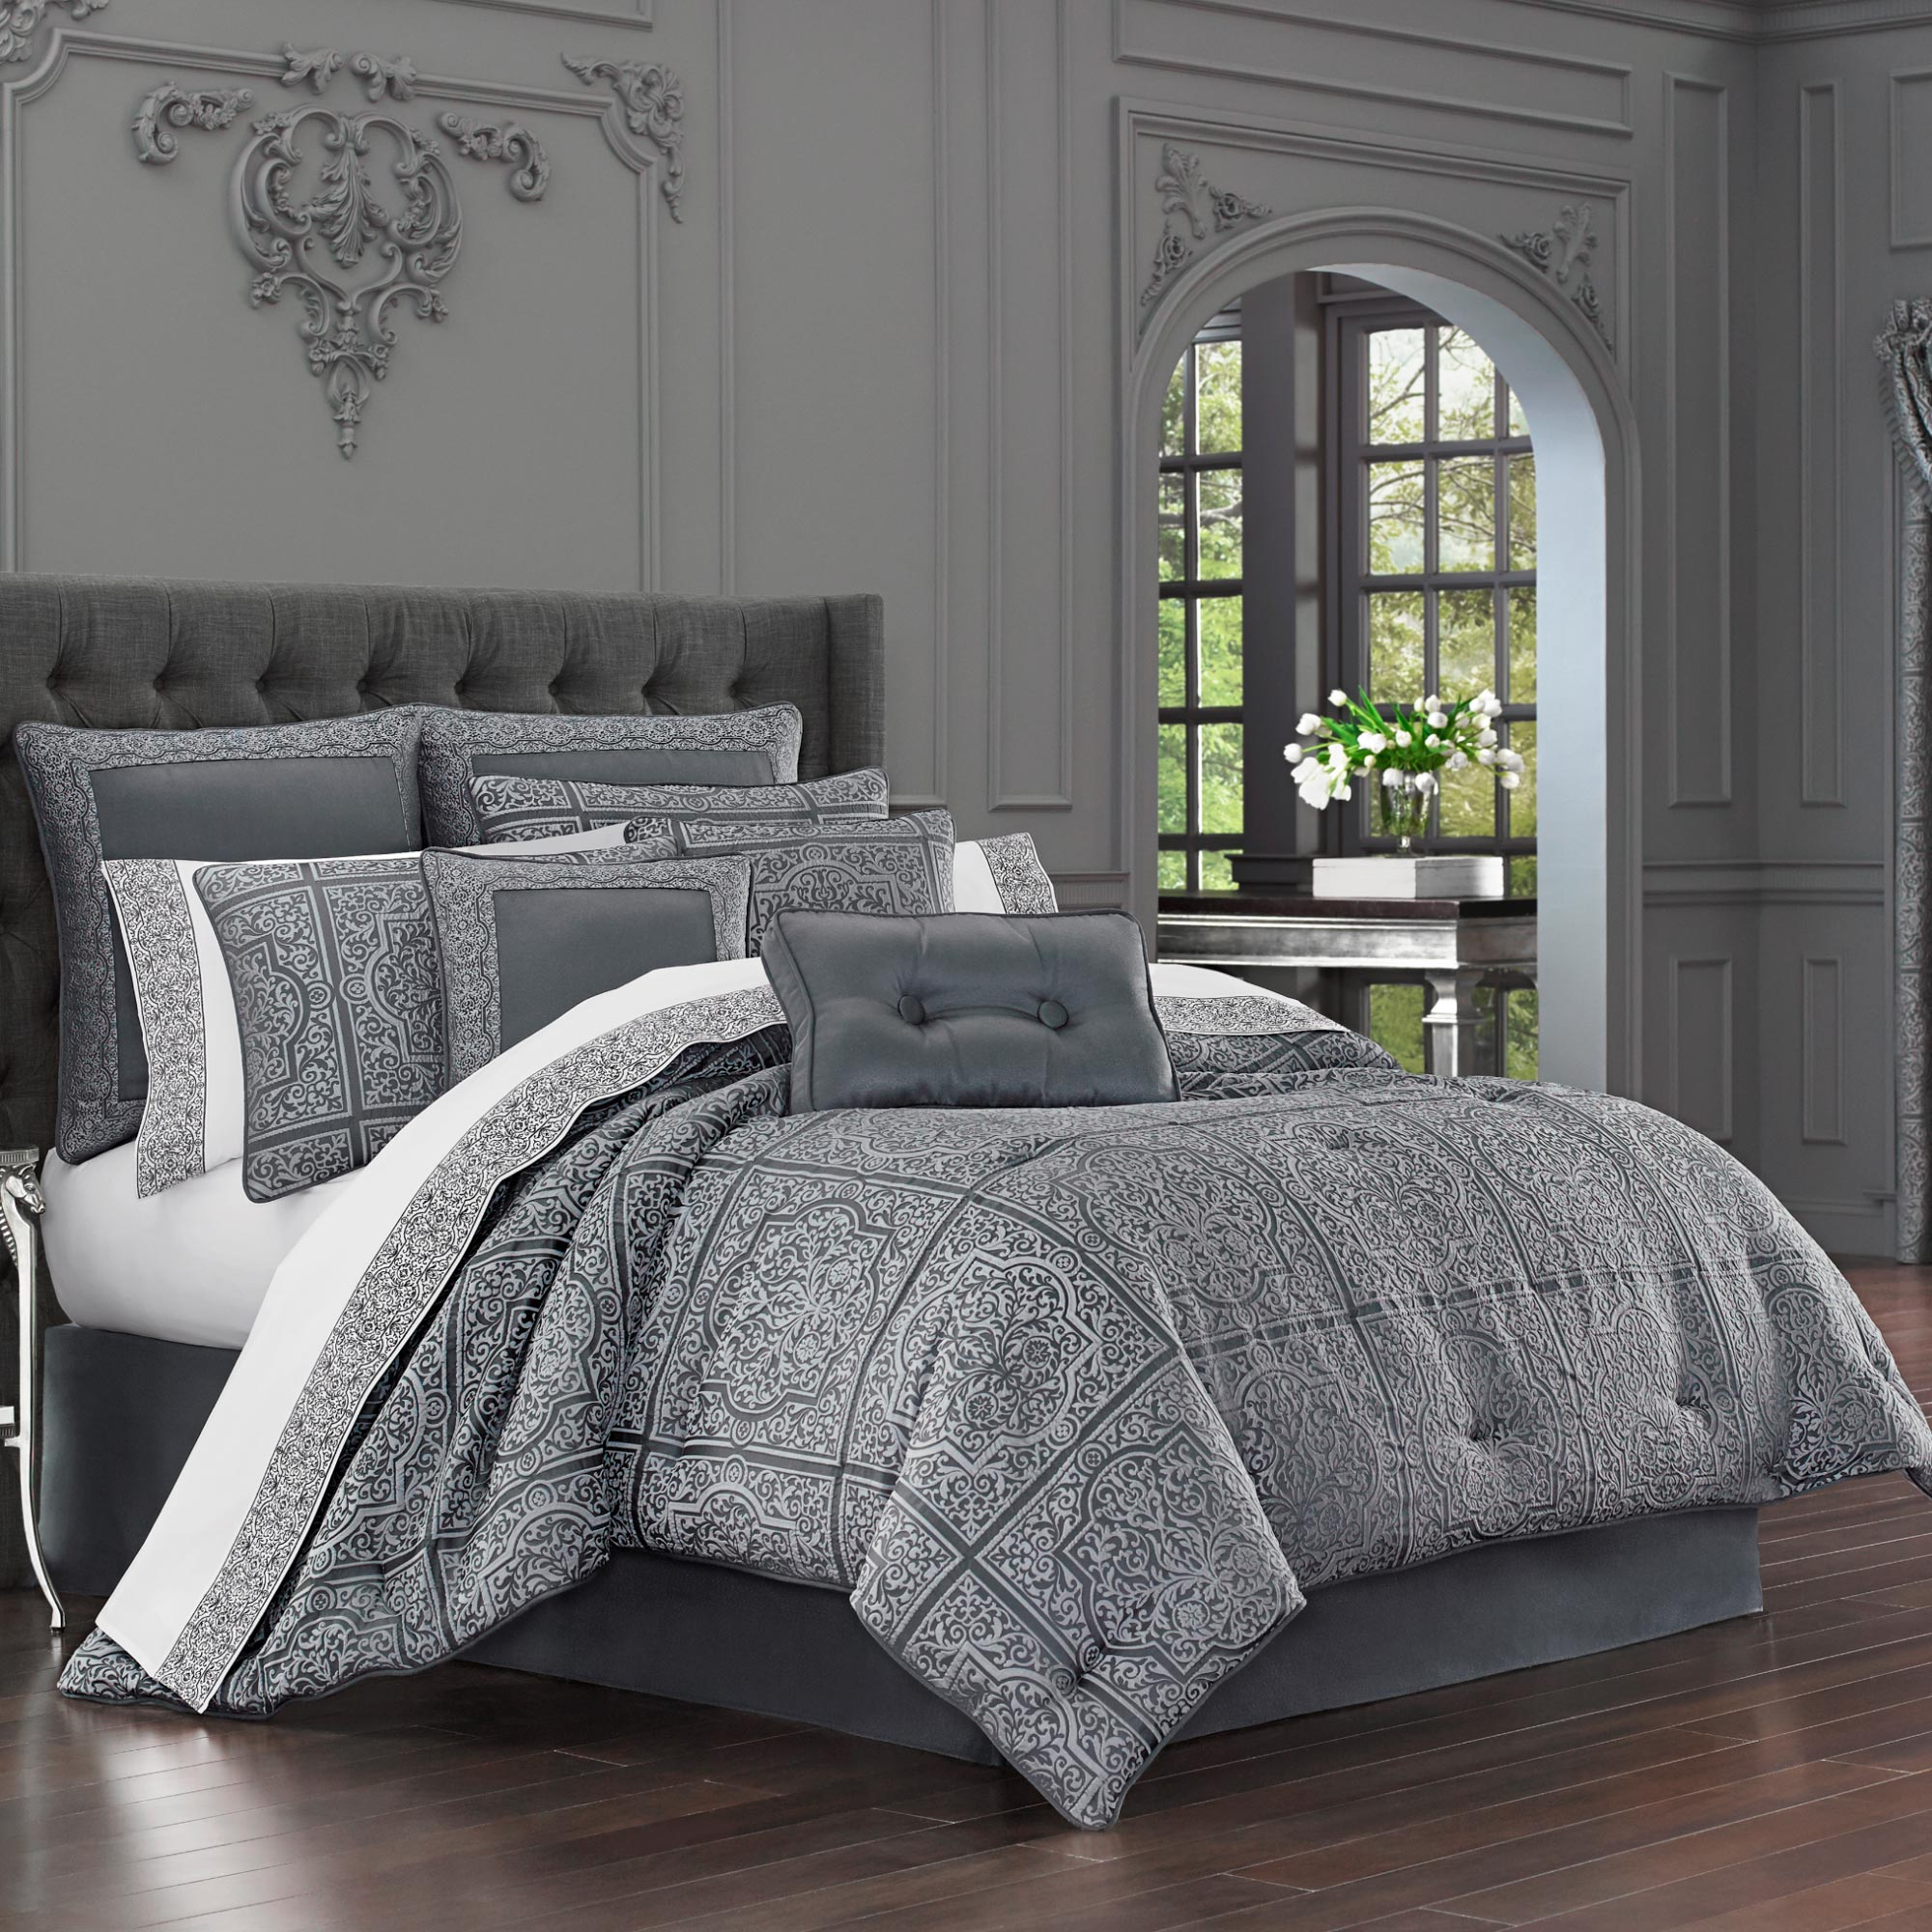 Charcoal Bedding Sets Rigoletto Charcoal Queen 4 Piece Comforter Set